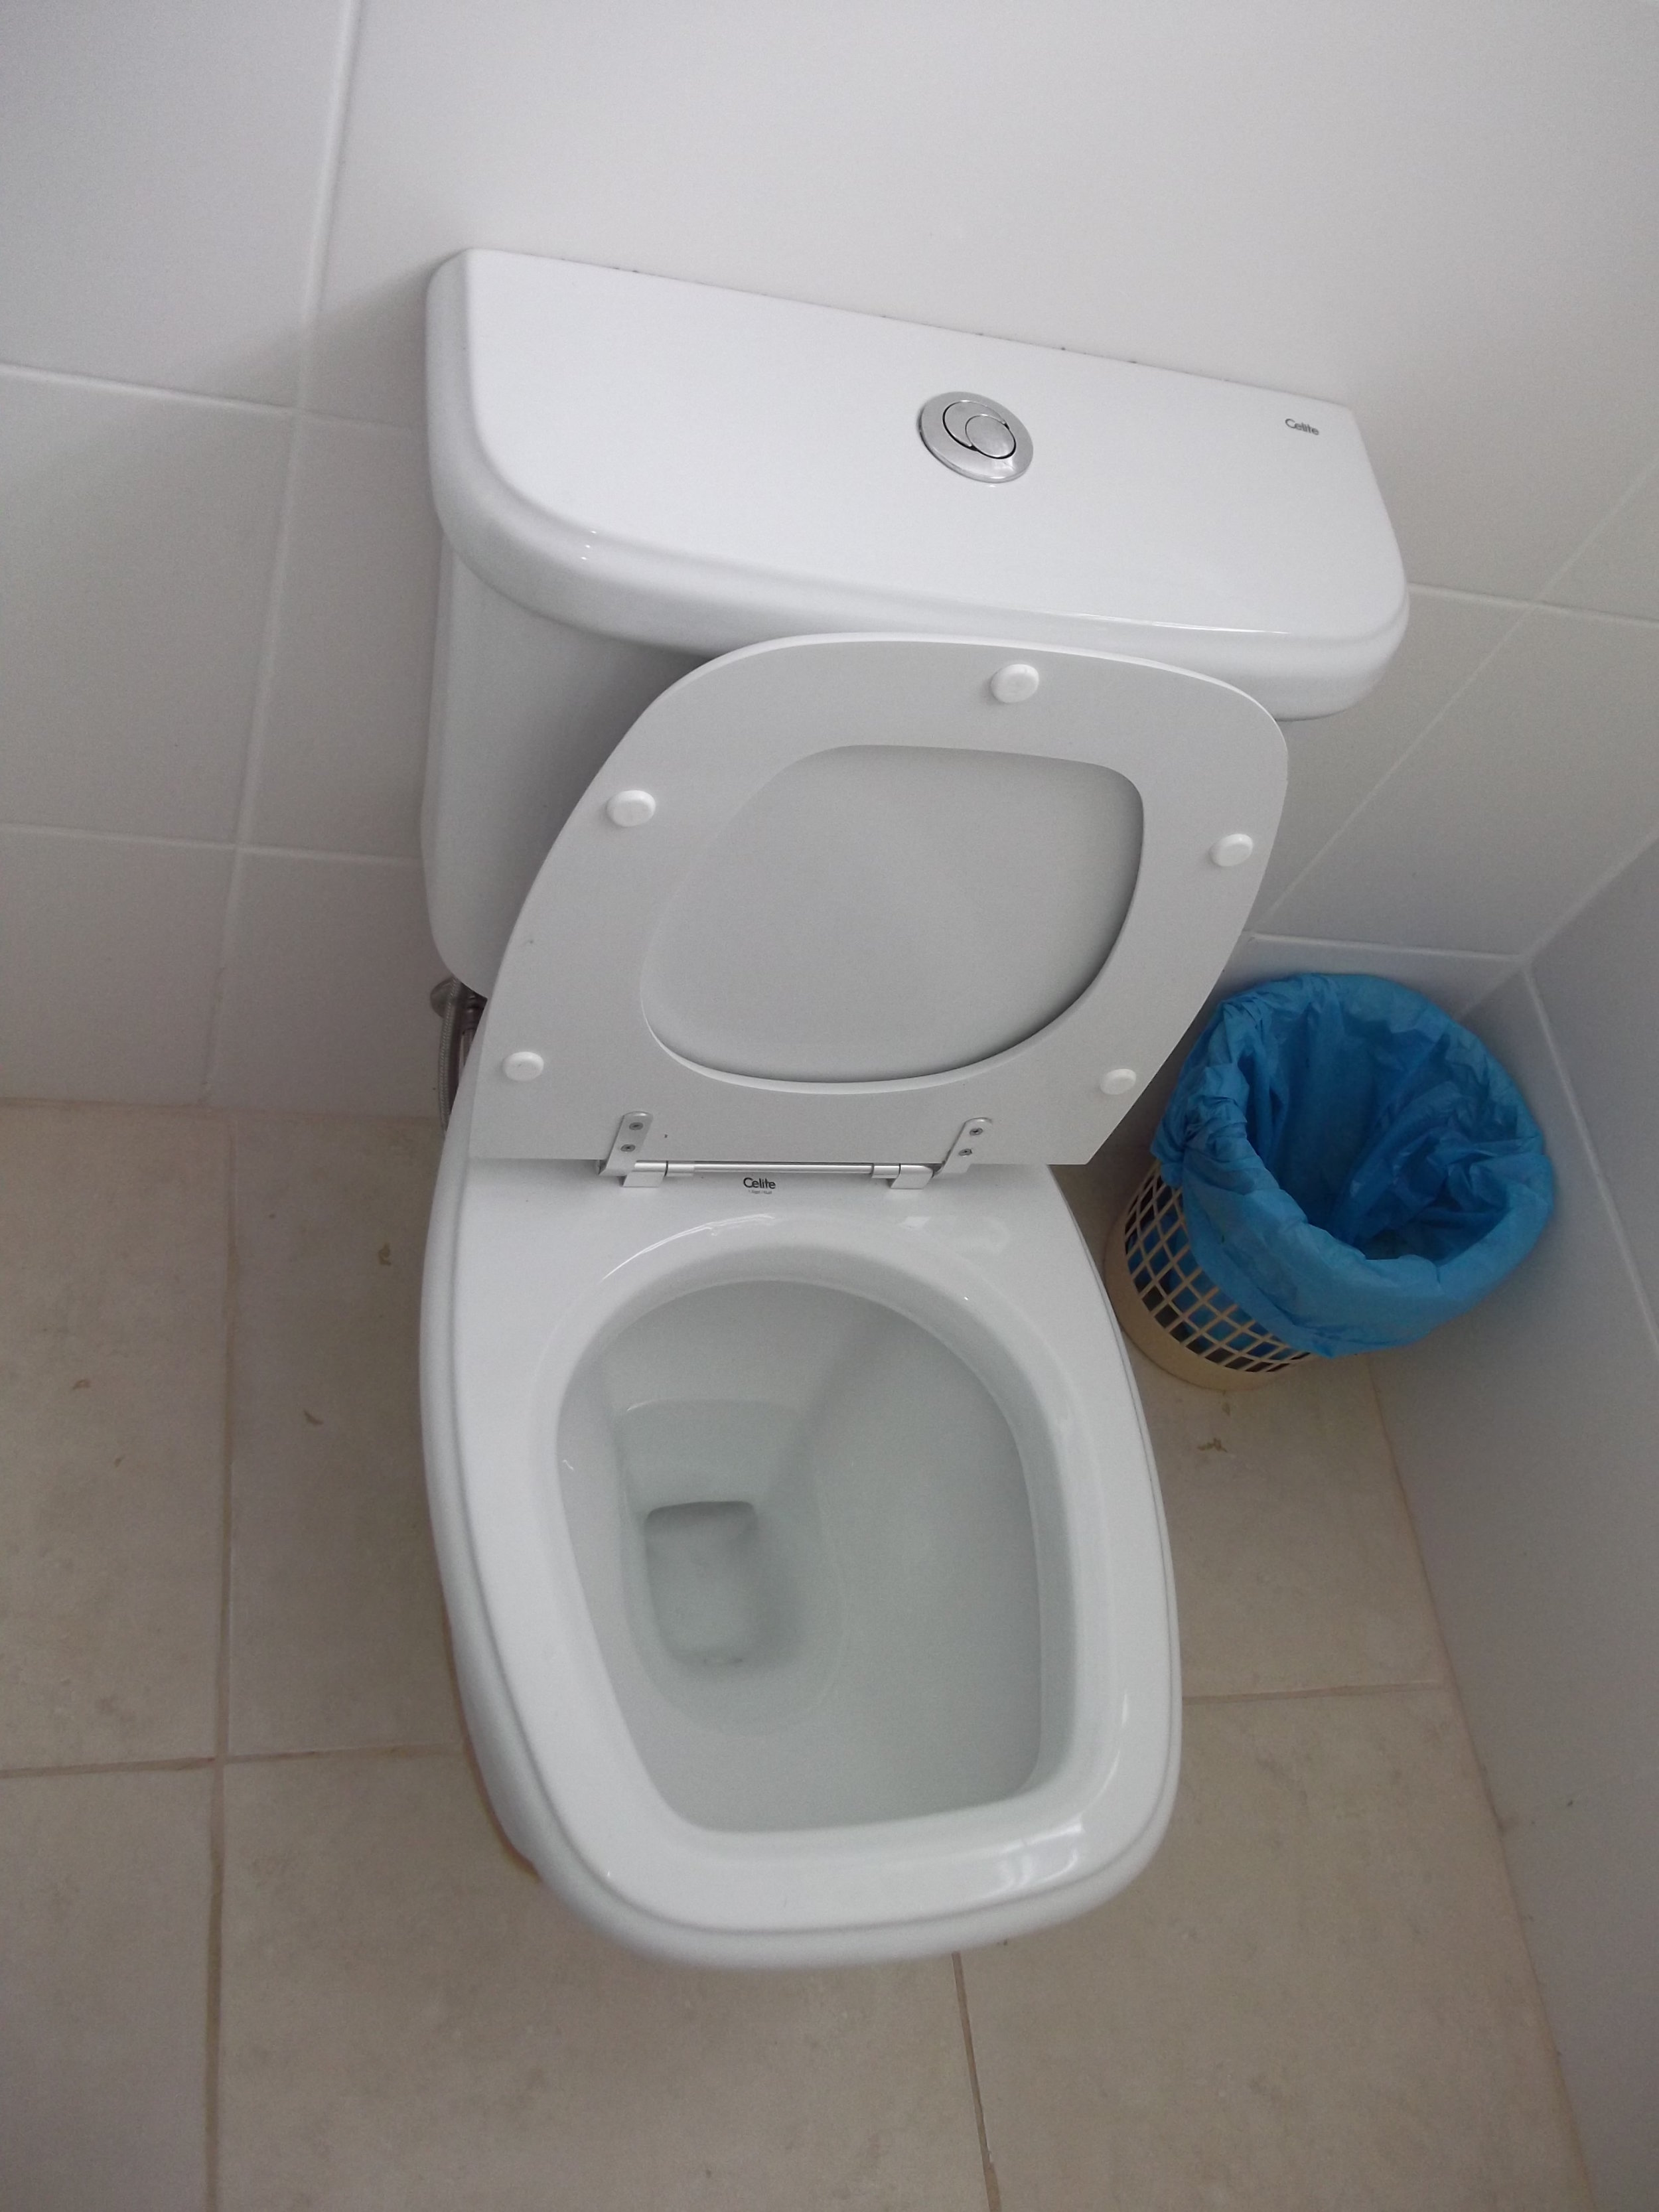 20161027 Google image labeled for reuse Toilet_double_flush_01